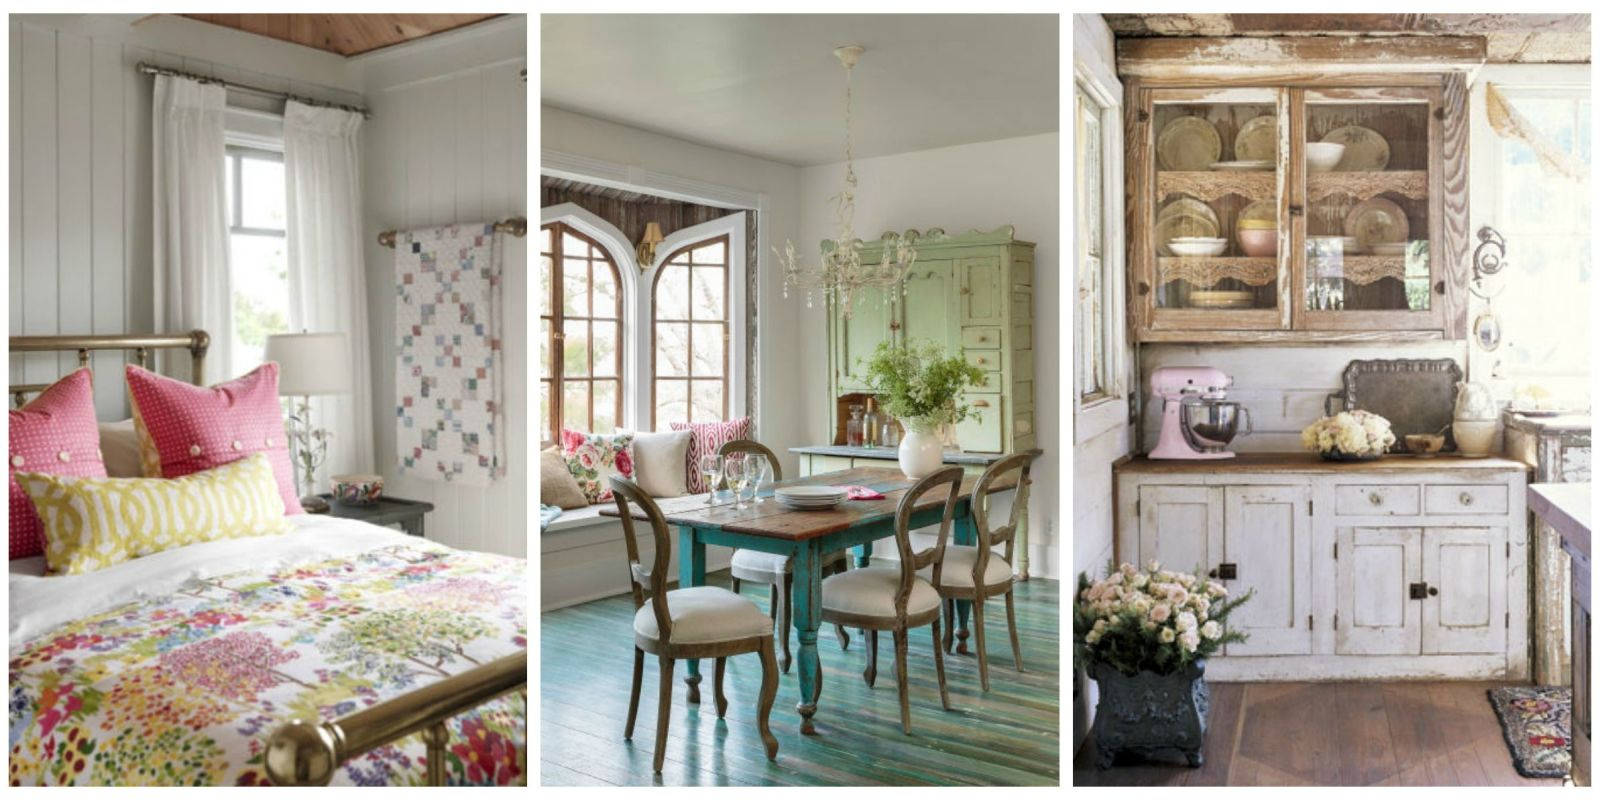 Cottage style interior inspiration cottage kitchen interior getbitten country kitchen - Chic country house architecture with adorable interior design ...